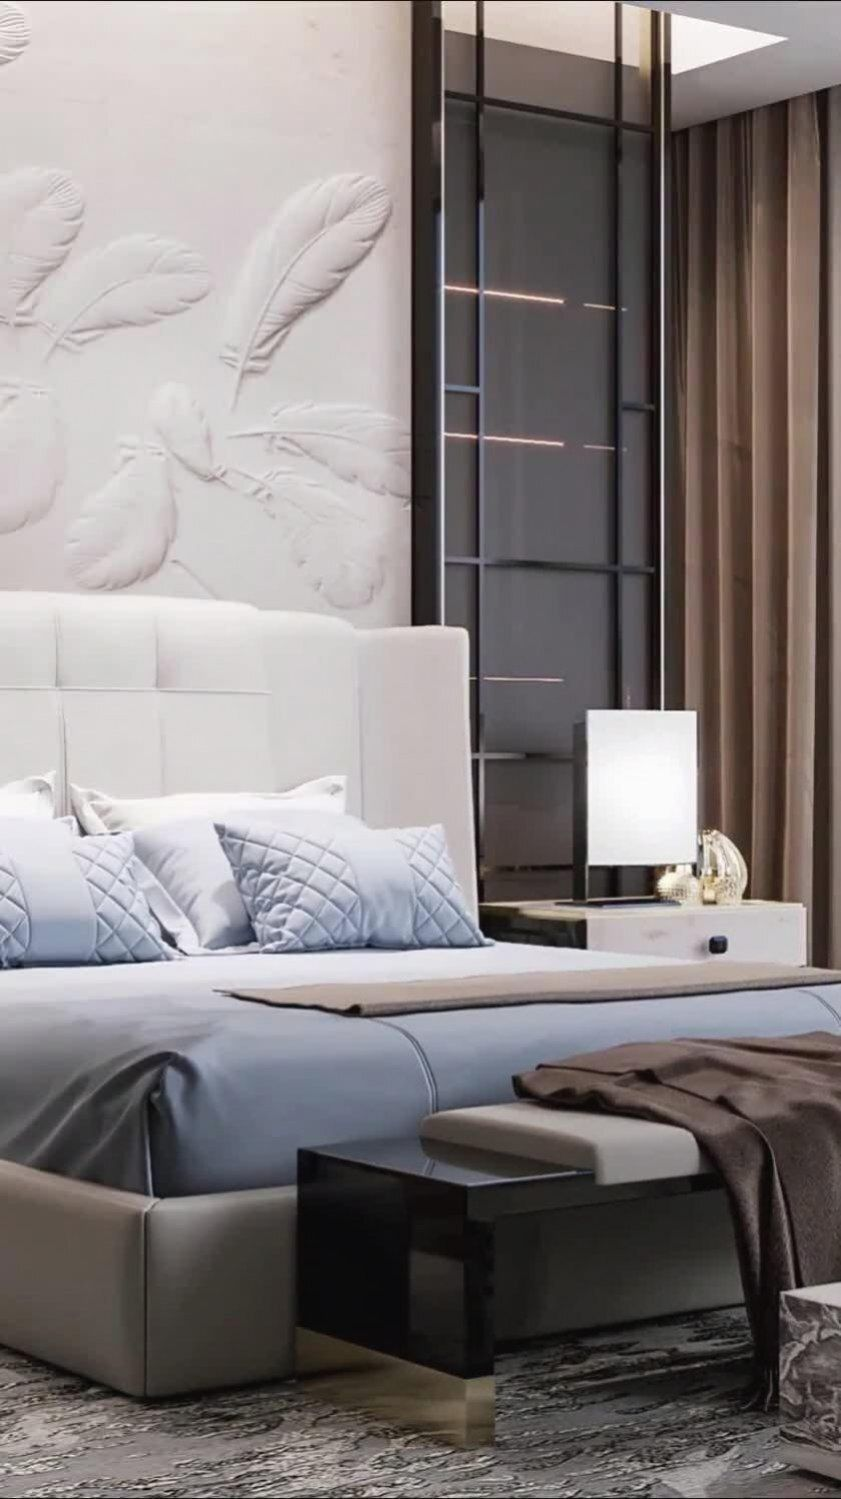 Interior video for big bedroom for a family. Find more unique